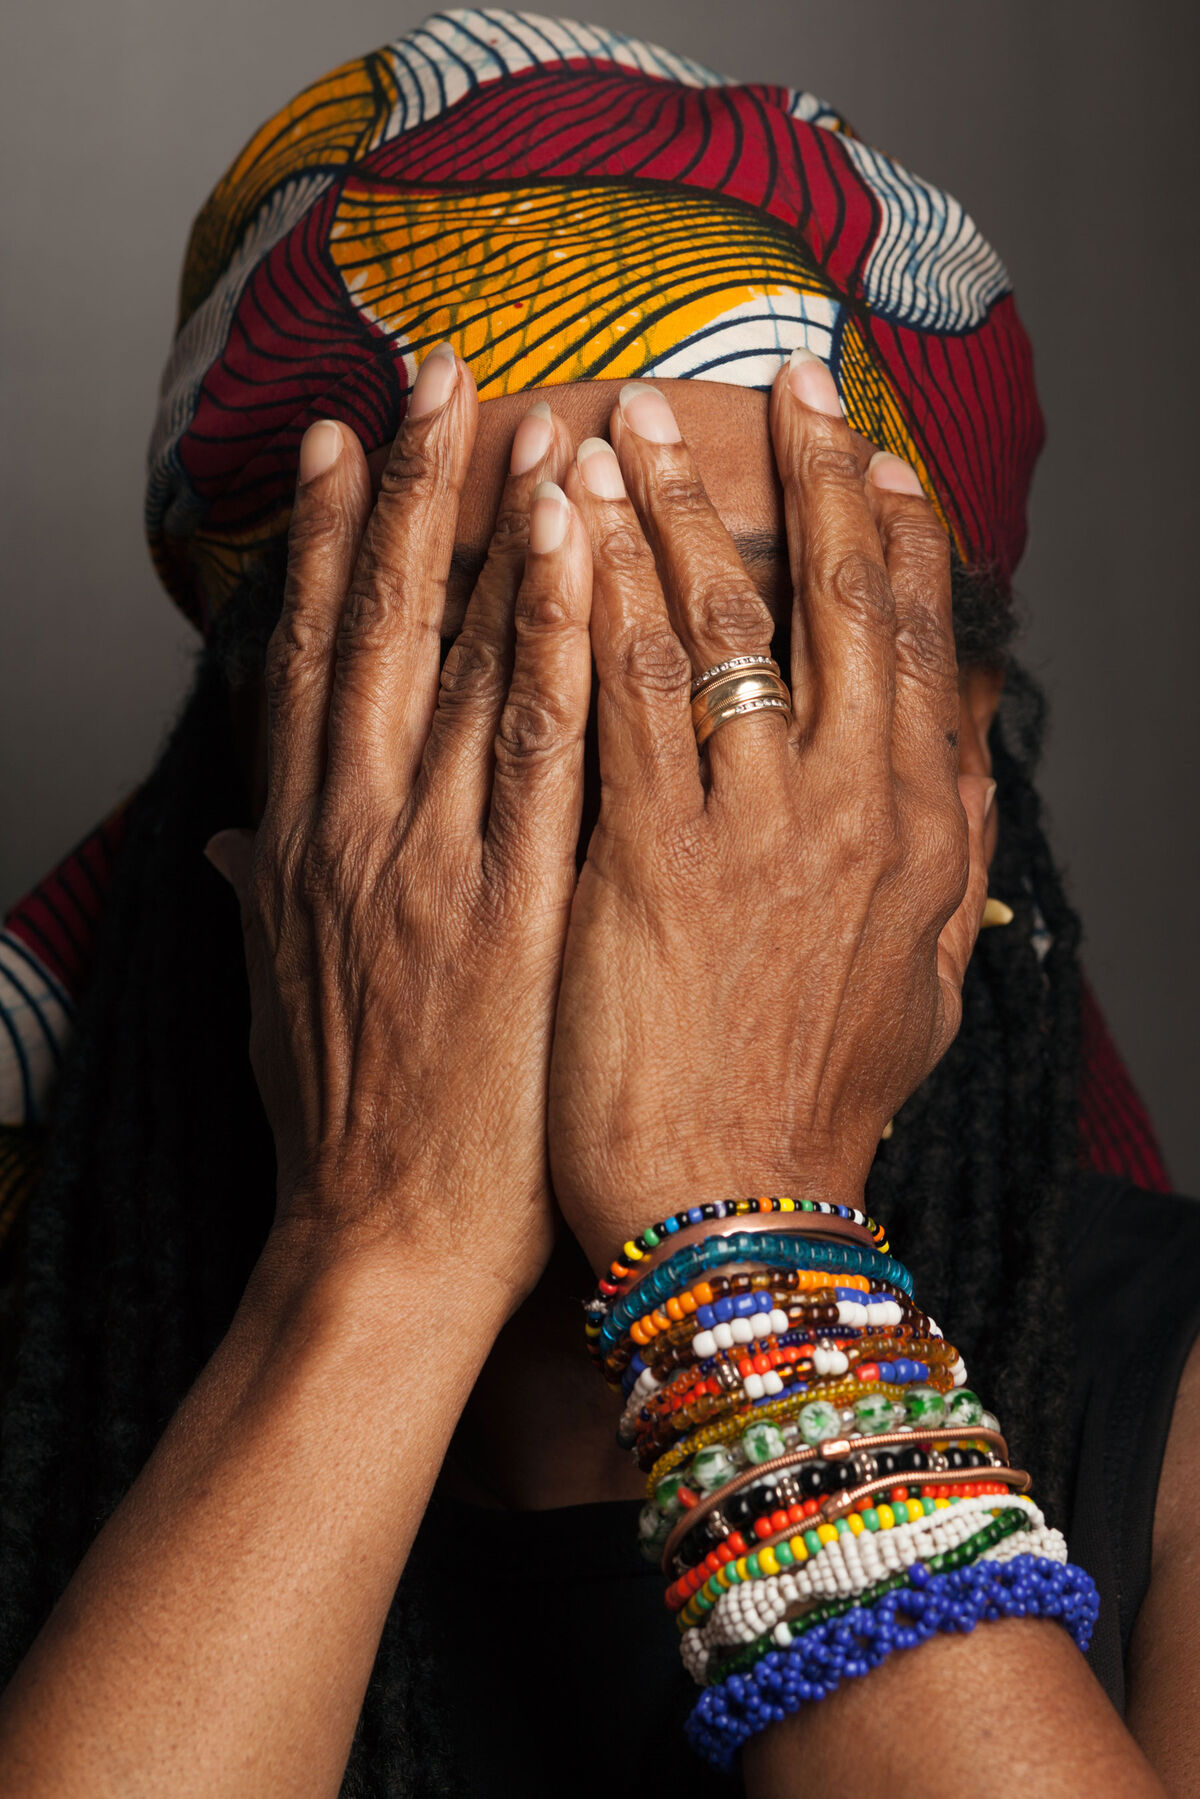 As the founder of the percussion ensemble Women of the Calabash, Madeleine Yayodele Nelson performed for eminent world leaders, including Barack Obama, in a quest to popularize music from Africa and the African diaspora. Nelson passed away last September at age 69; she joined Westbeth in 1982. Photo by Frankie Alduino.